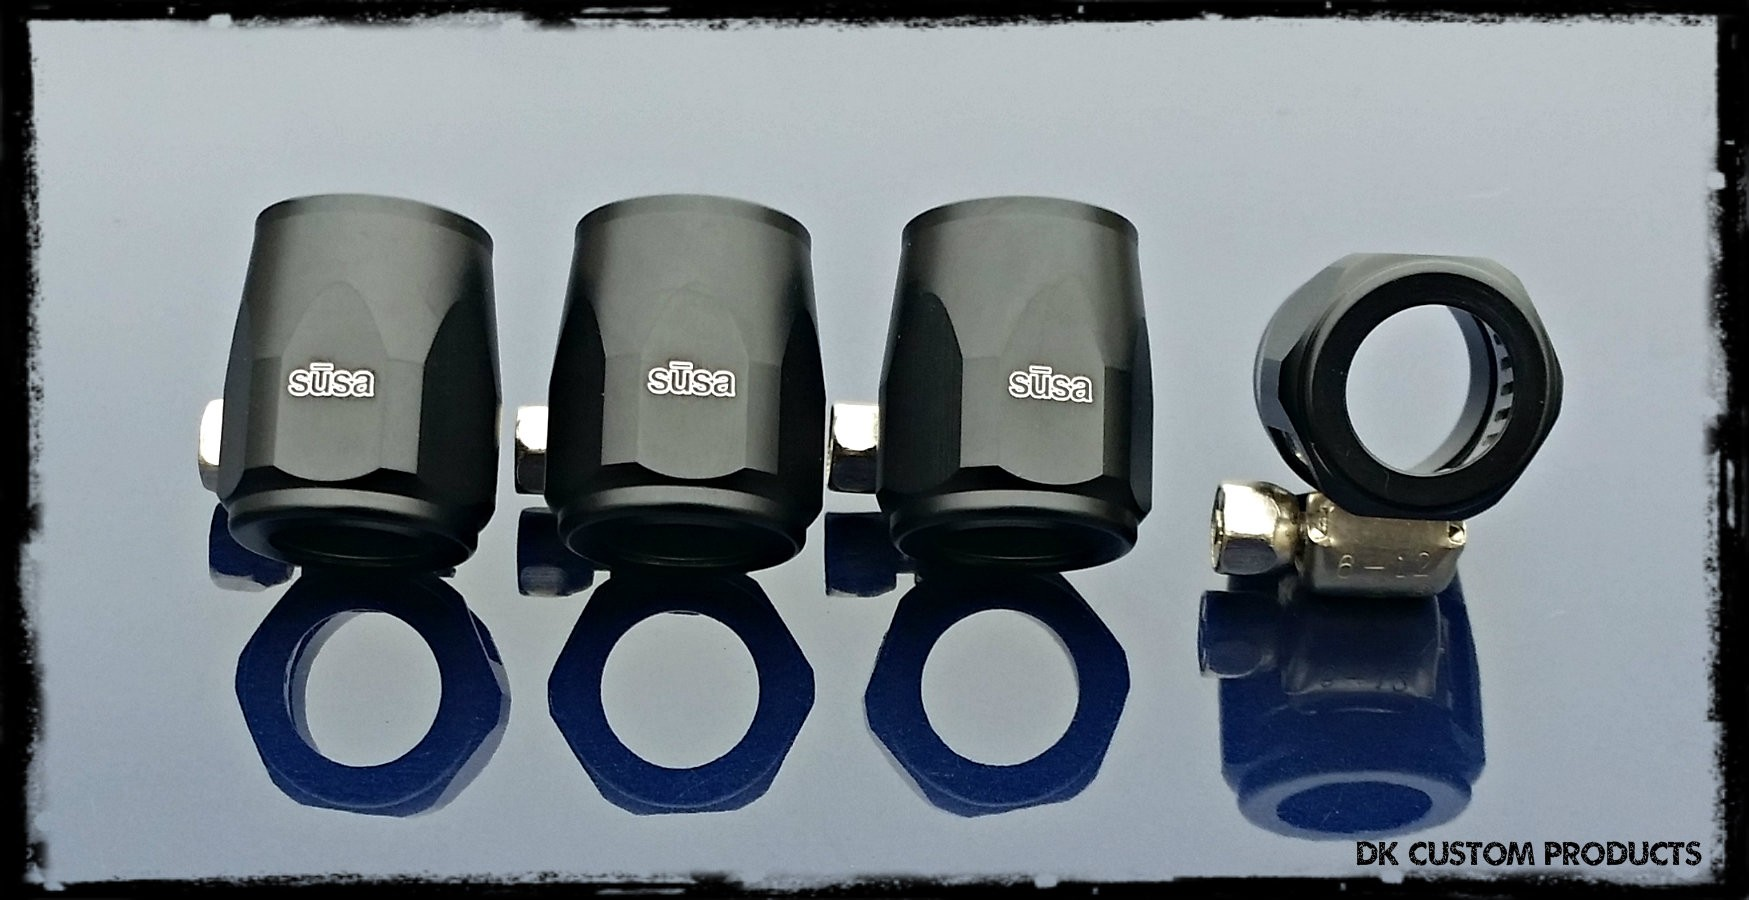 Black Hose Finishers Covers for Breather & Oil Hose Lines DK Custom Products Harley Davidson Premium Discrete Magna Clamp